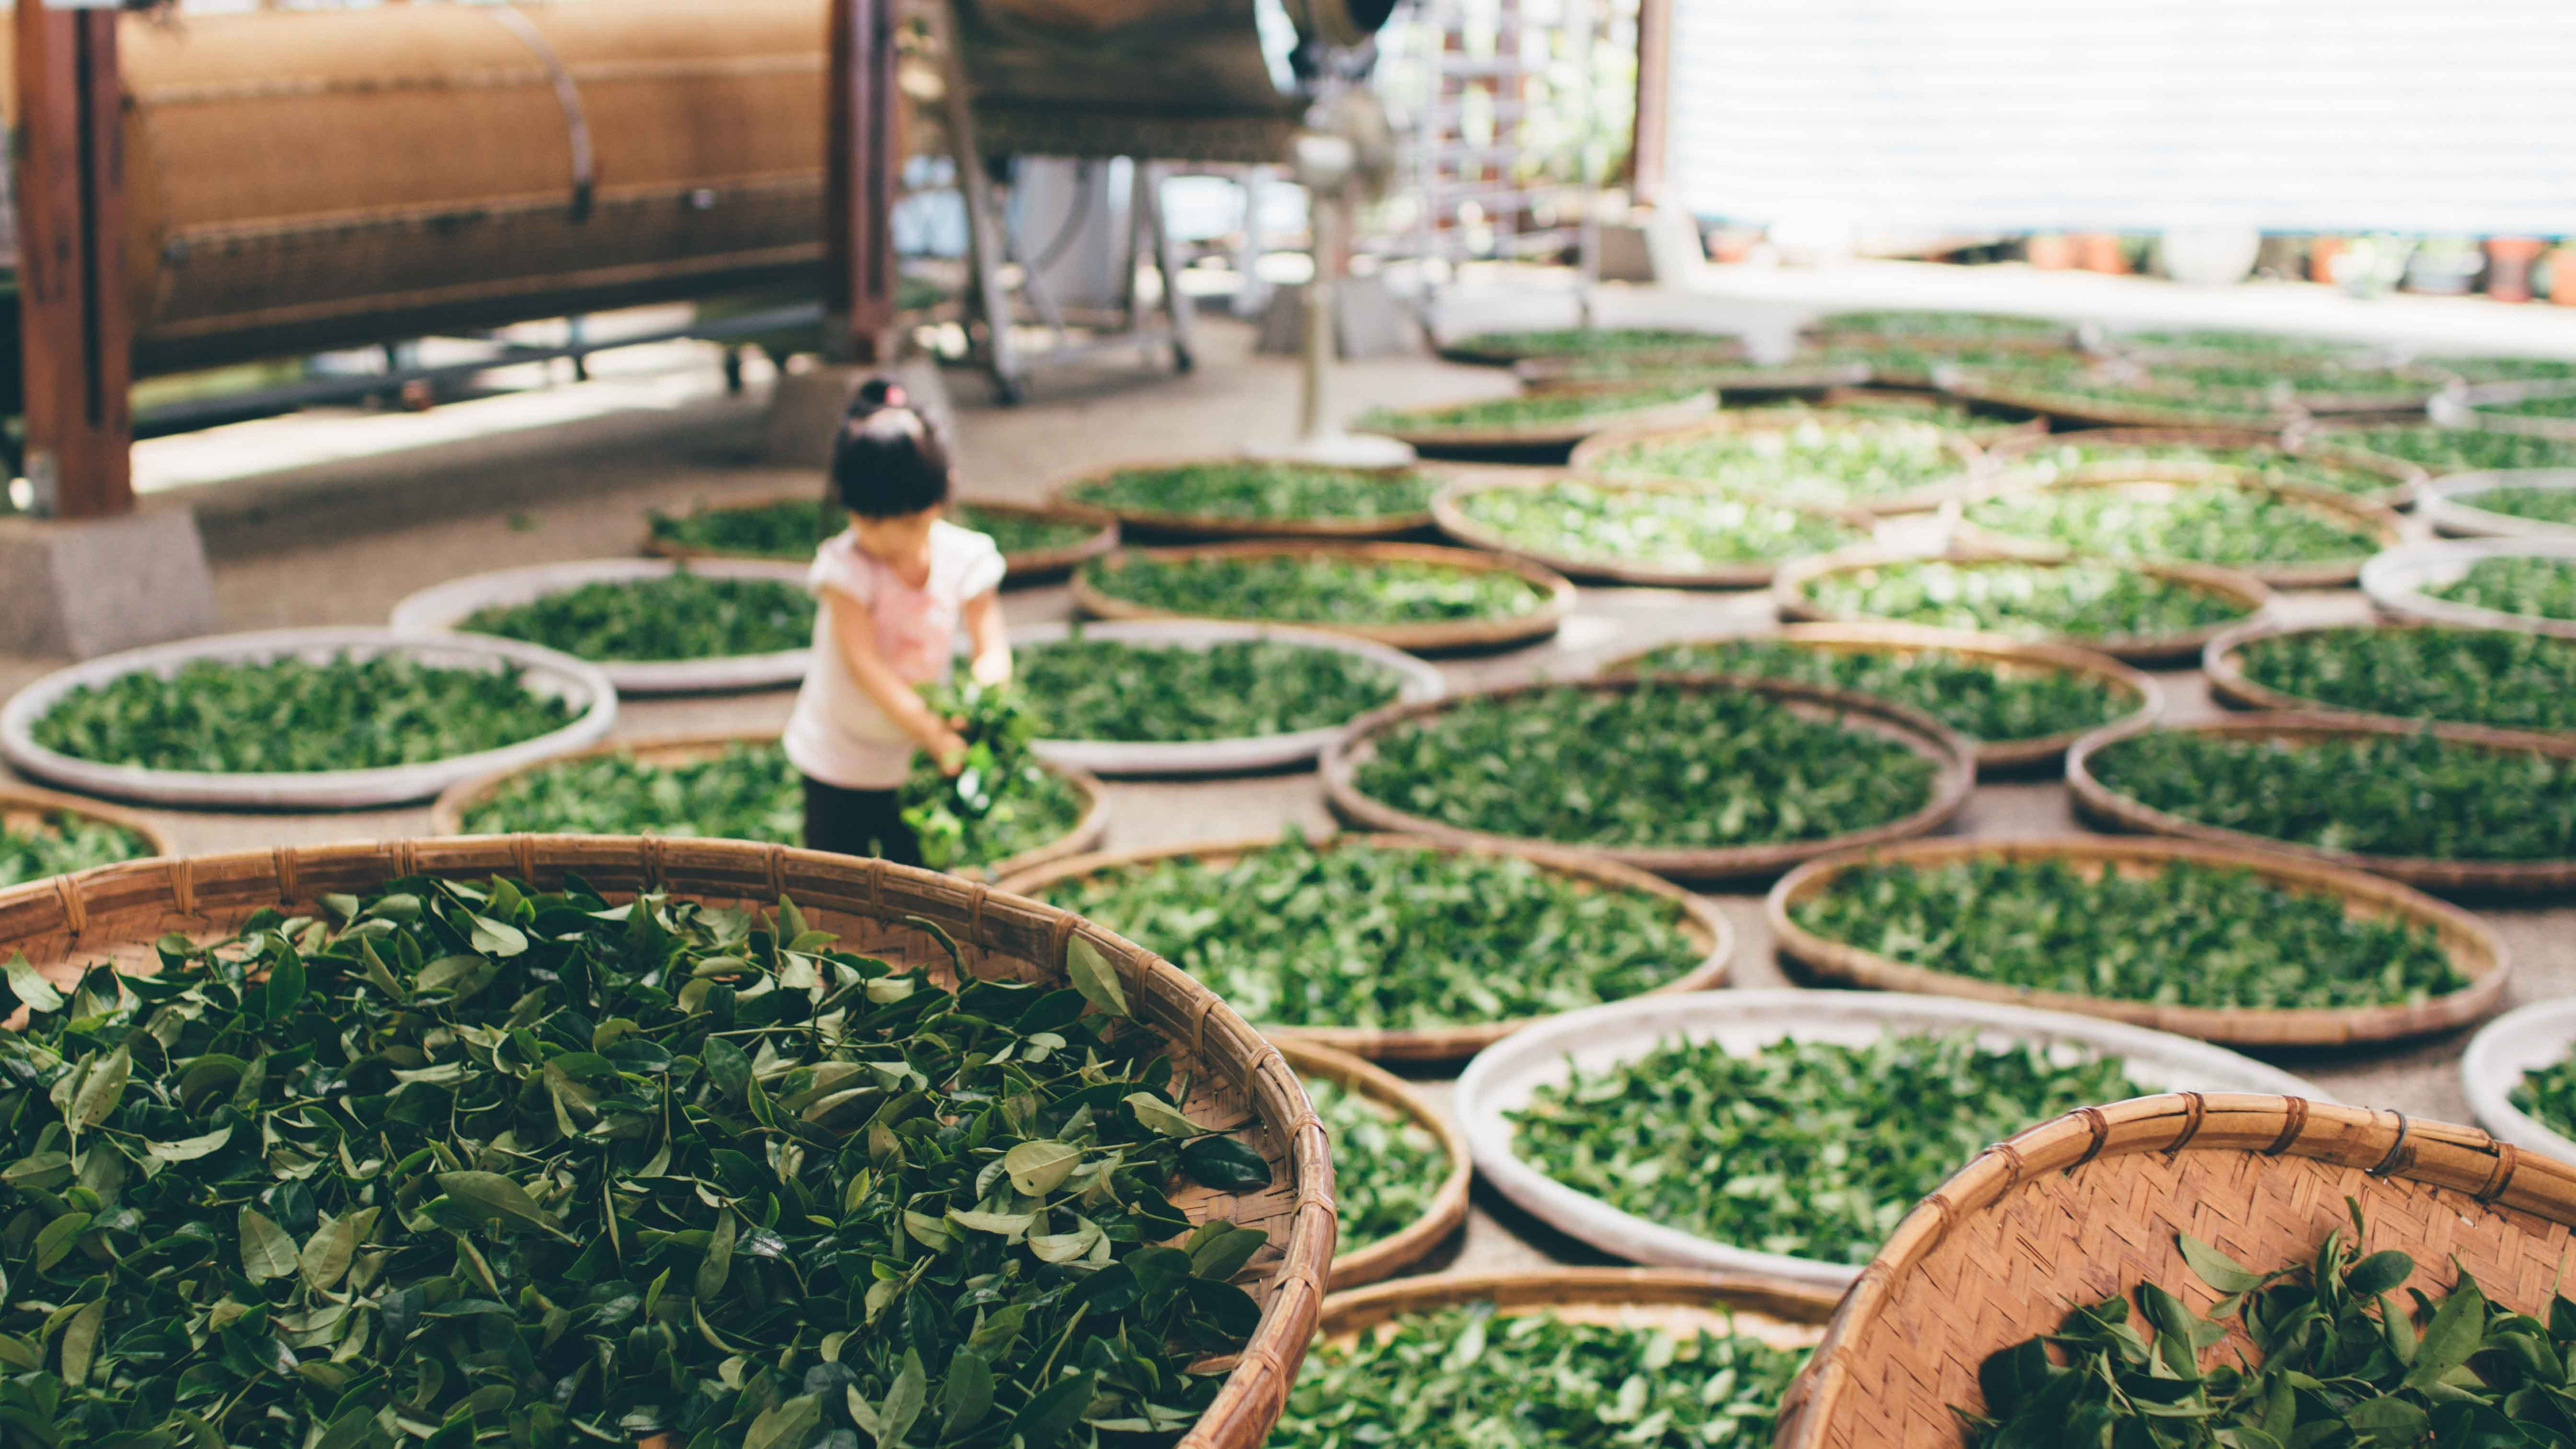 A girl gathers leaves from a basket in a room filled with baskets of leaves.